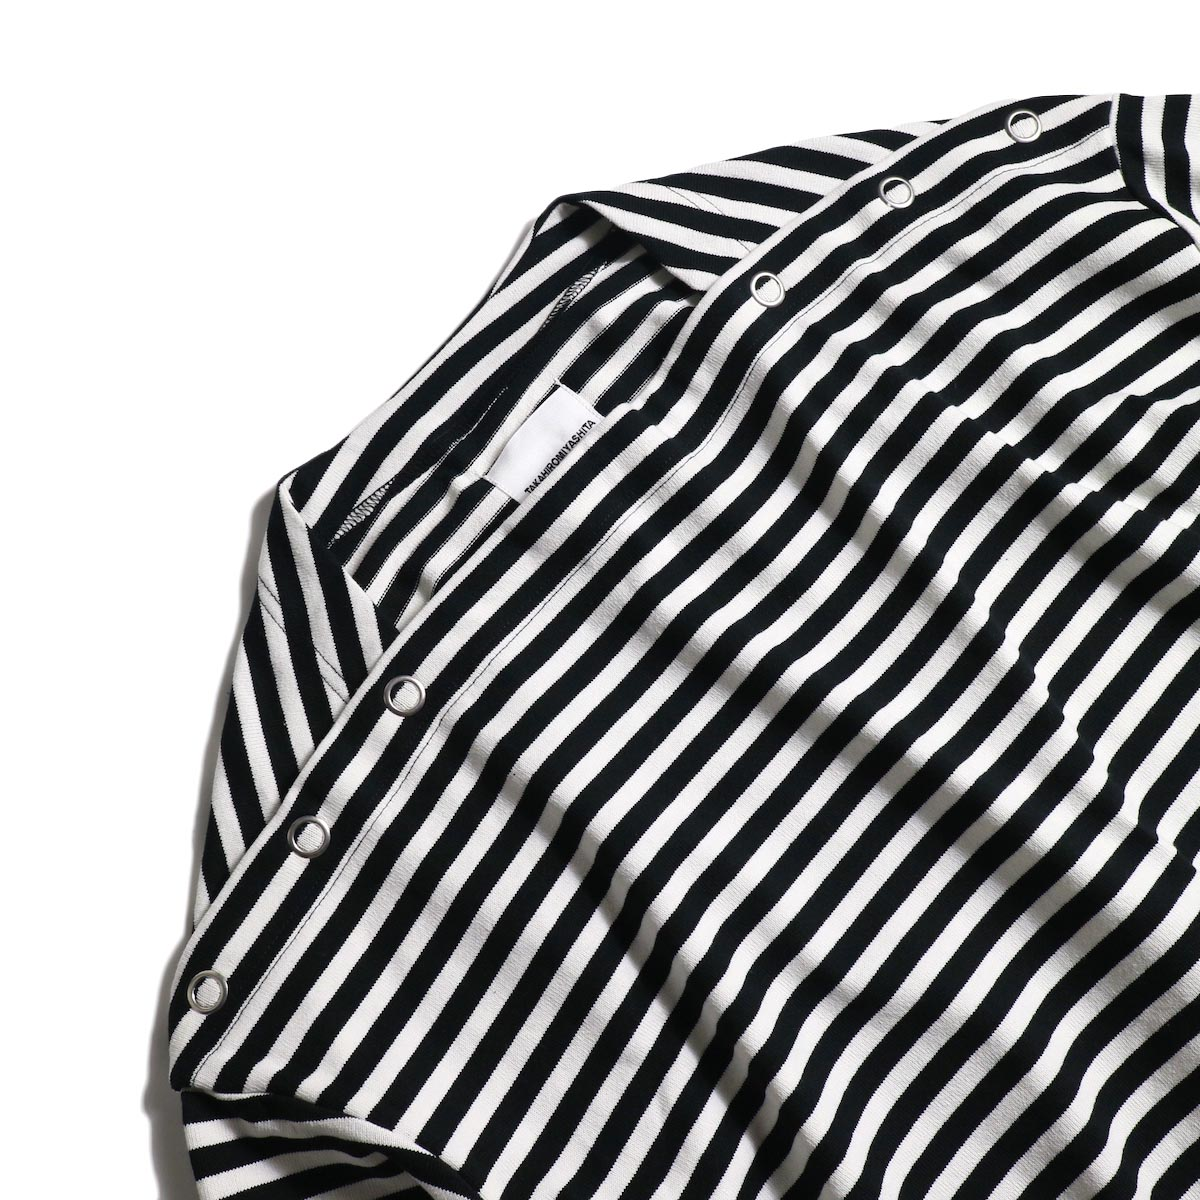 The Soloist / sc.0005cAW20 shoulder buttoned boat neck shirt. (Black×White)ボートネック